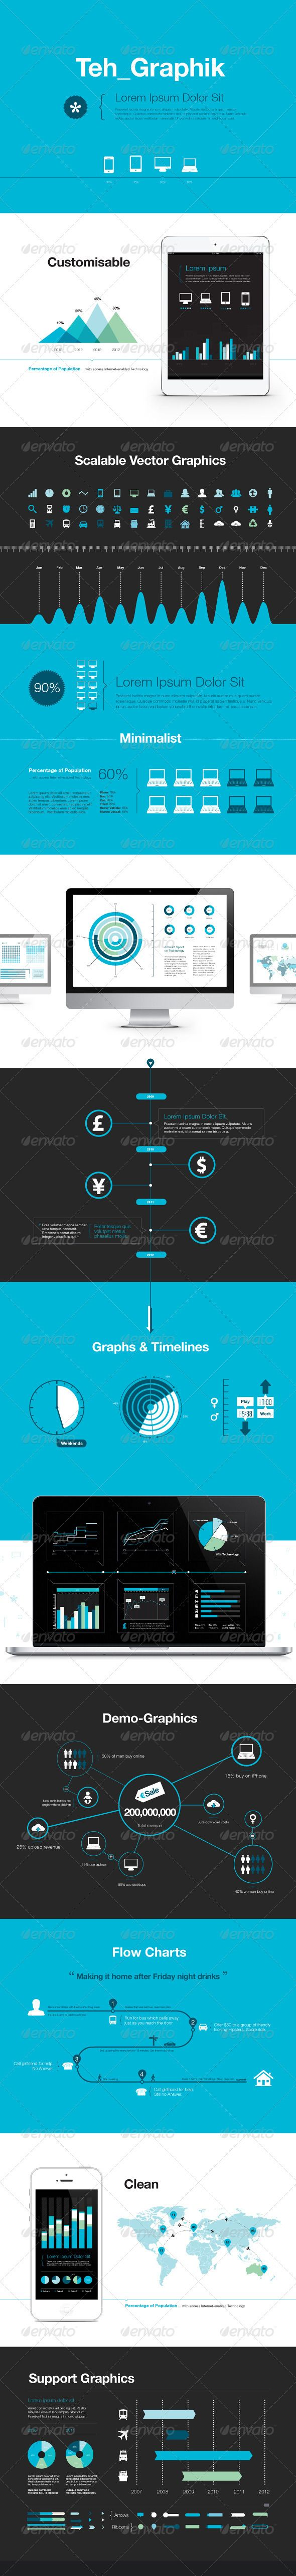 infographic kit free and premium psd files to download http ...